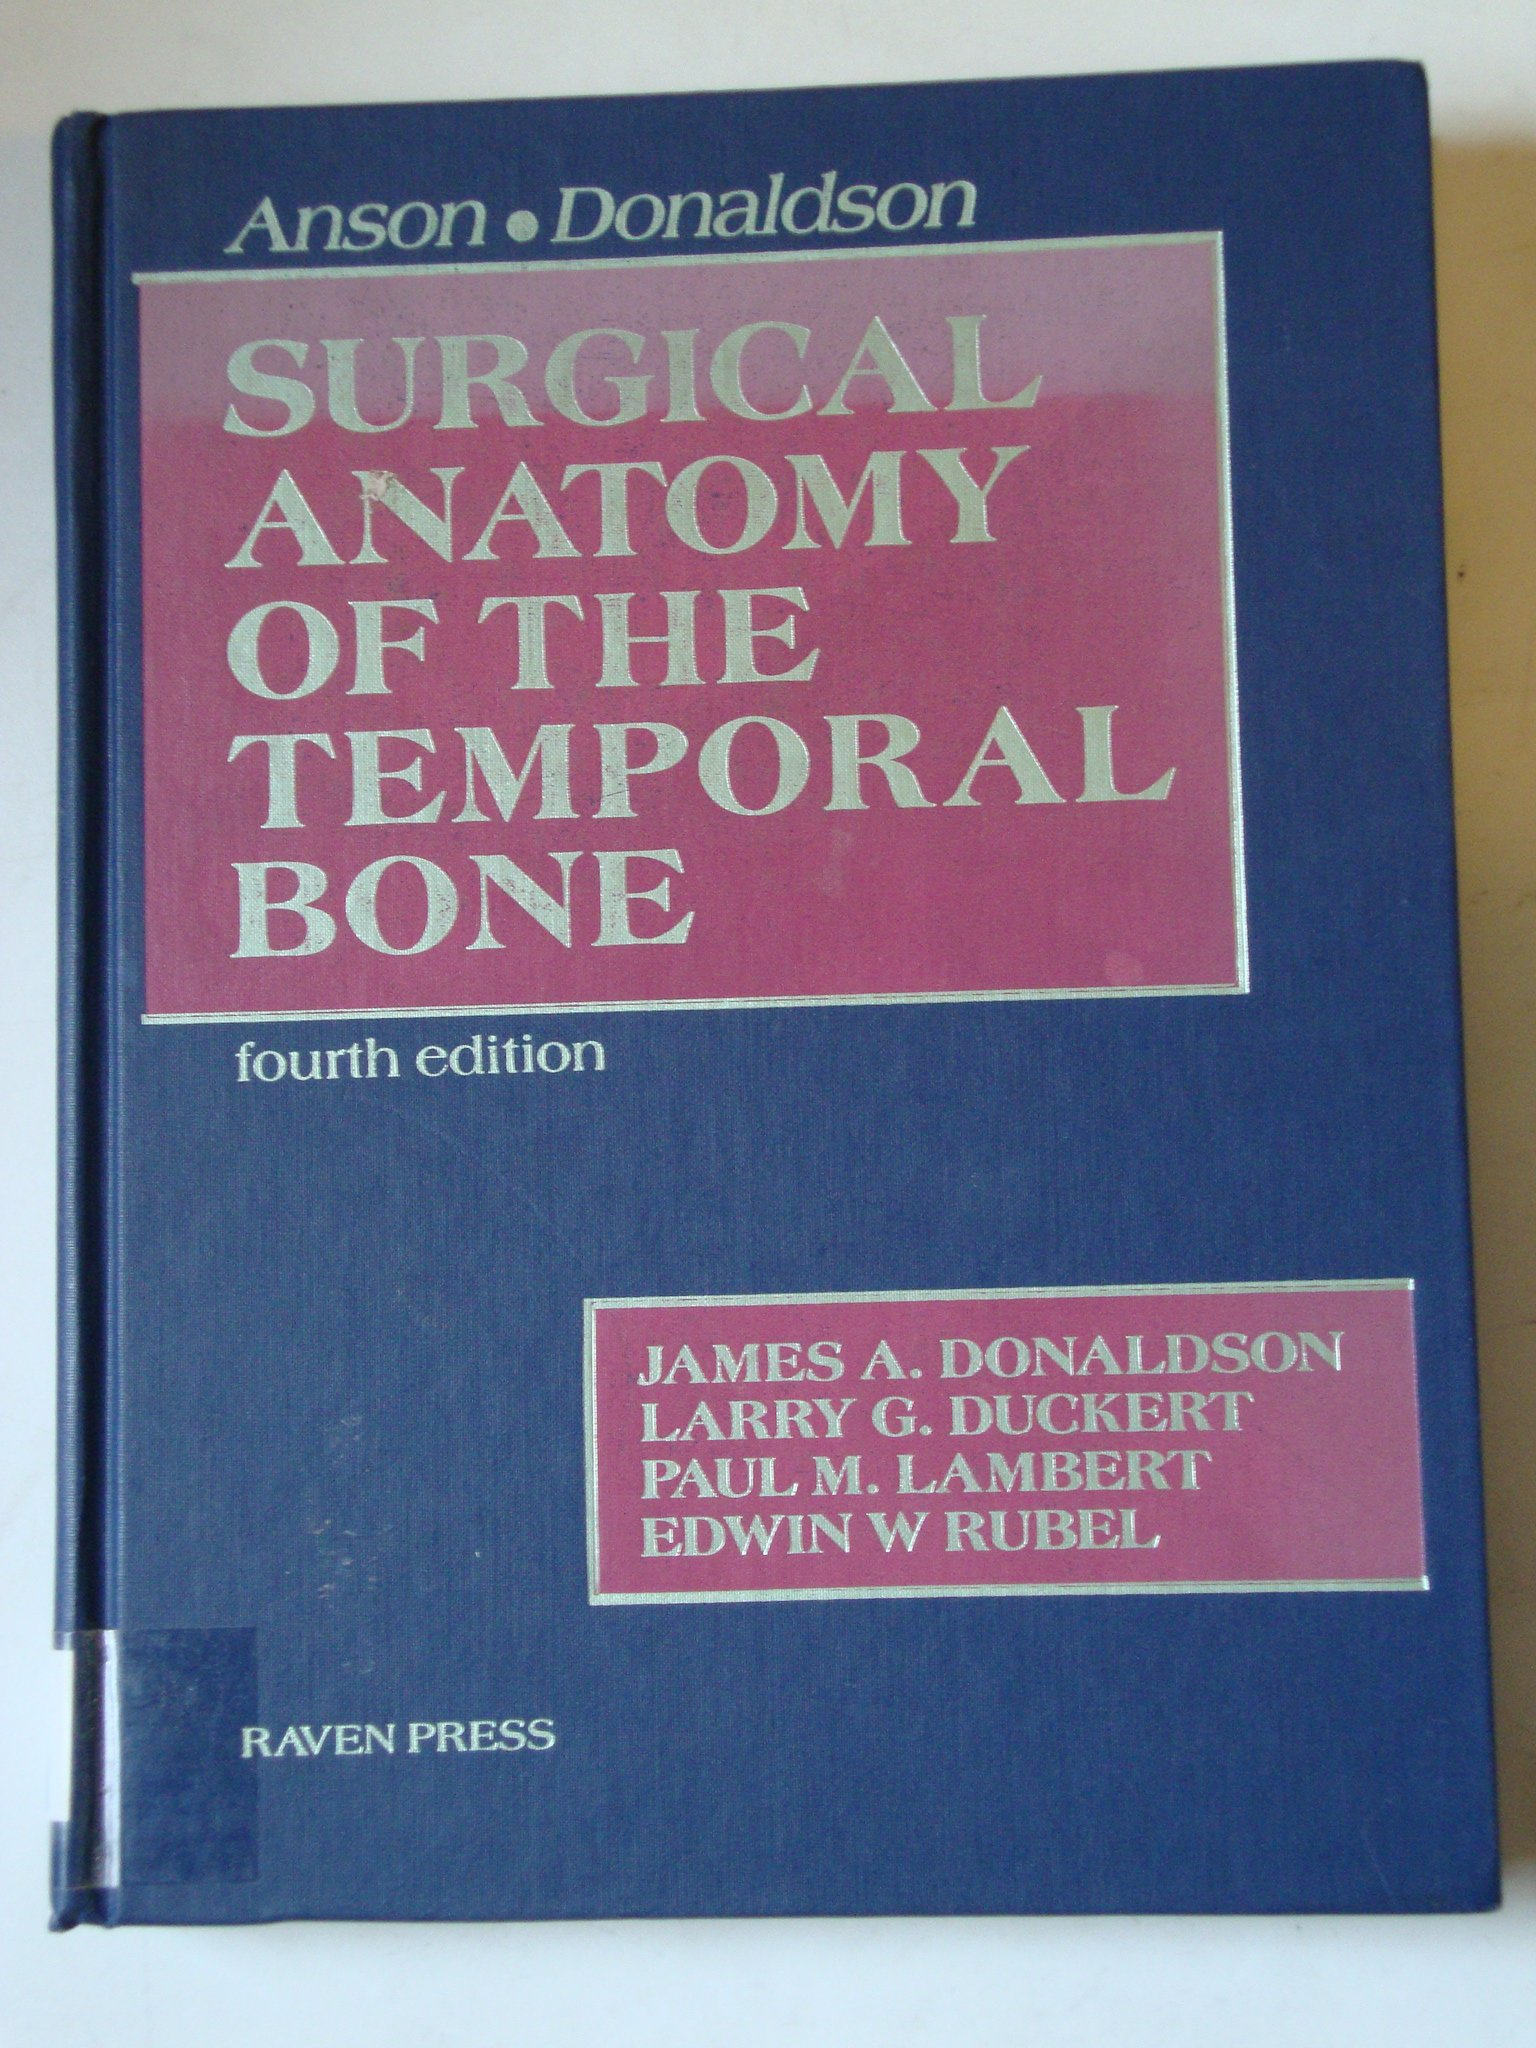 Buy Surgical Anatomy Of The Temporal Bone Book Online At Low Prices